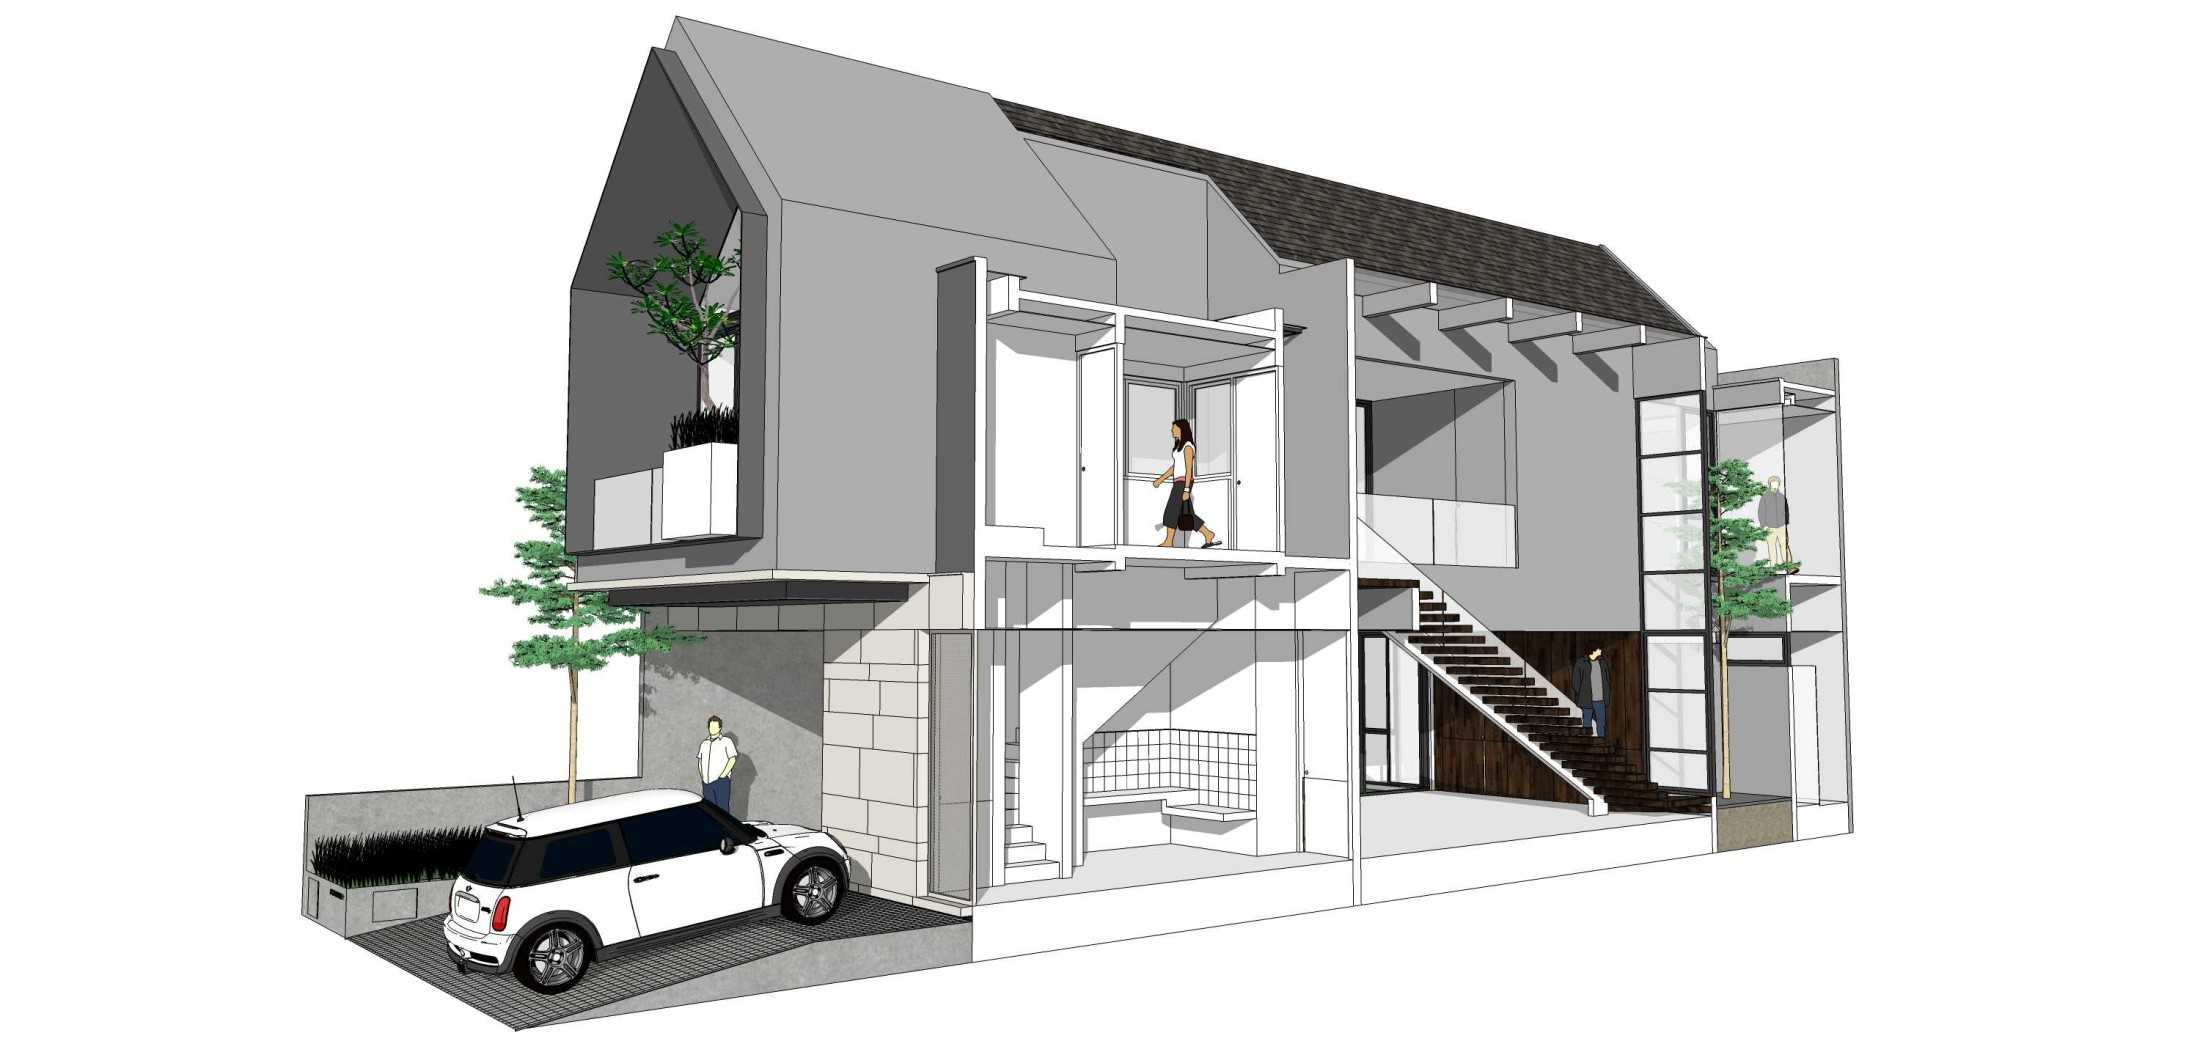 Simple Projects Architecture 'hhh' House Surabaya, Kota Sby, Jawa Timur, Indonesia  Simple-Projects-Architecture-Hhh-House  75099